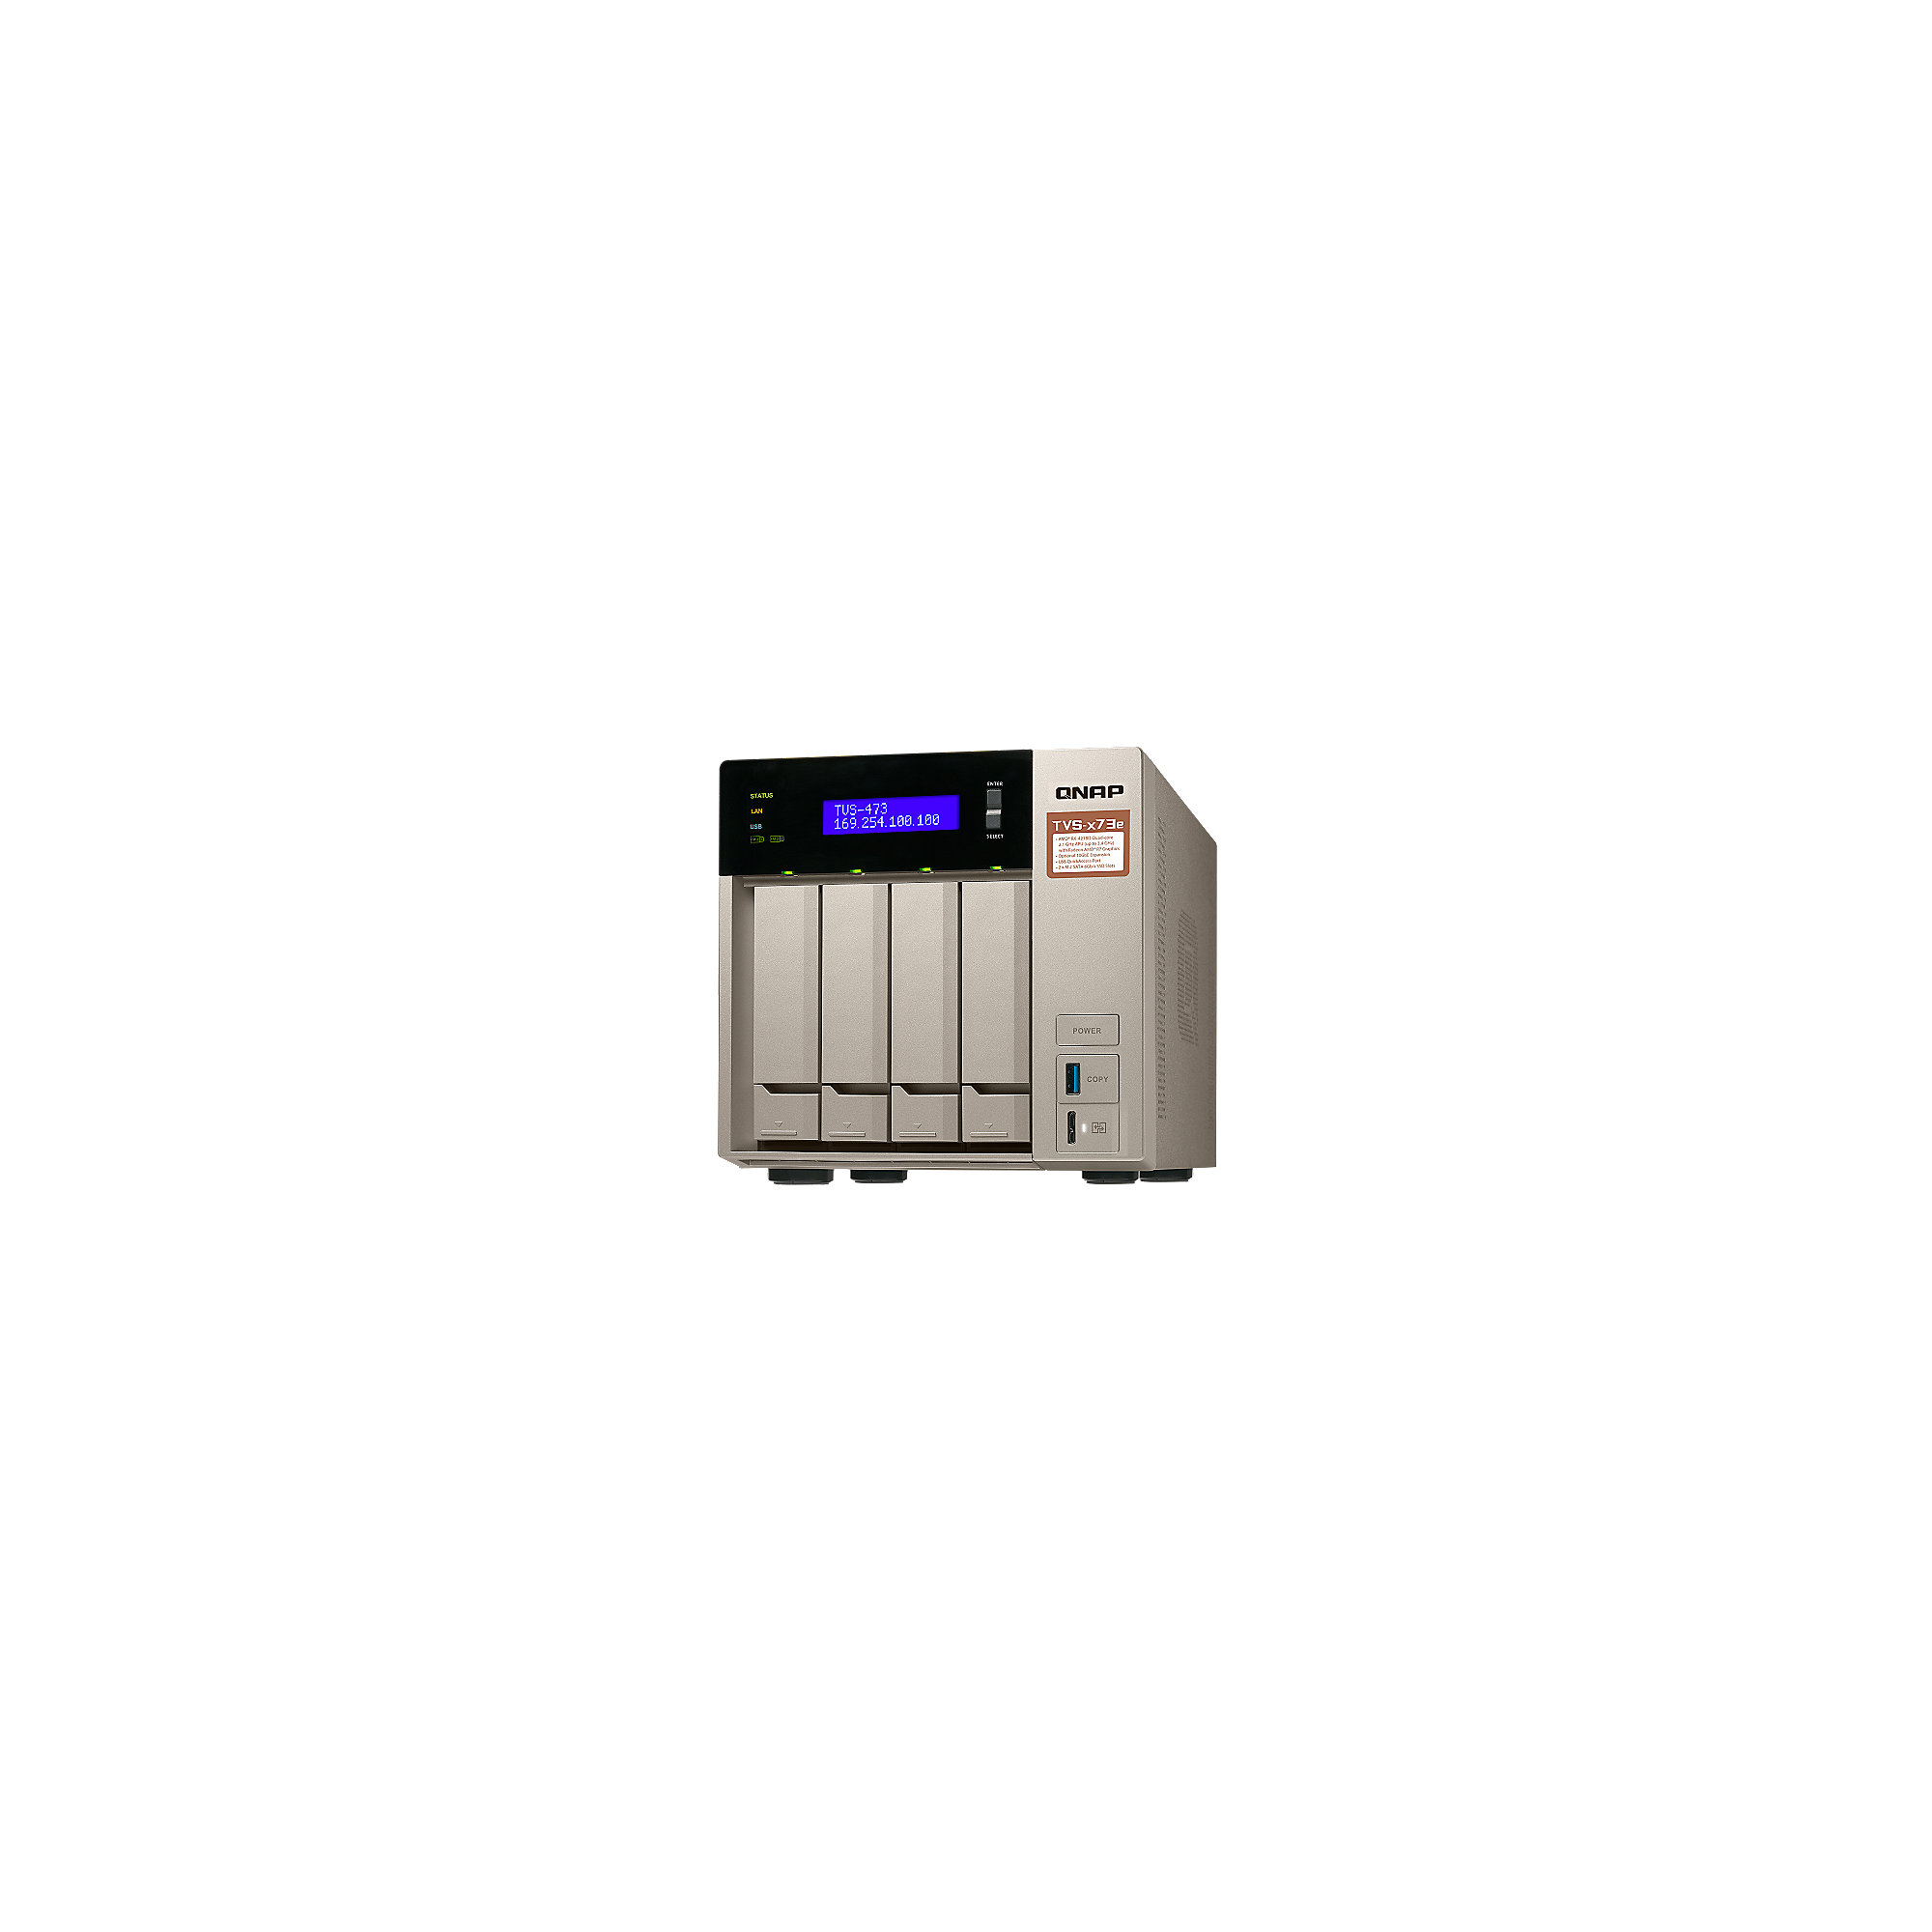 QNAP TVS-473e-4G NAS System 4-Bay 4TB inkl. 4x 1TB Seagate ST1000VN002